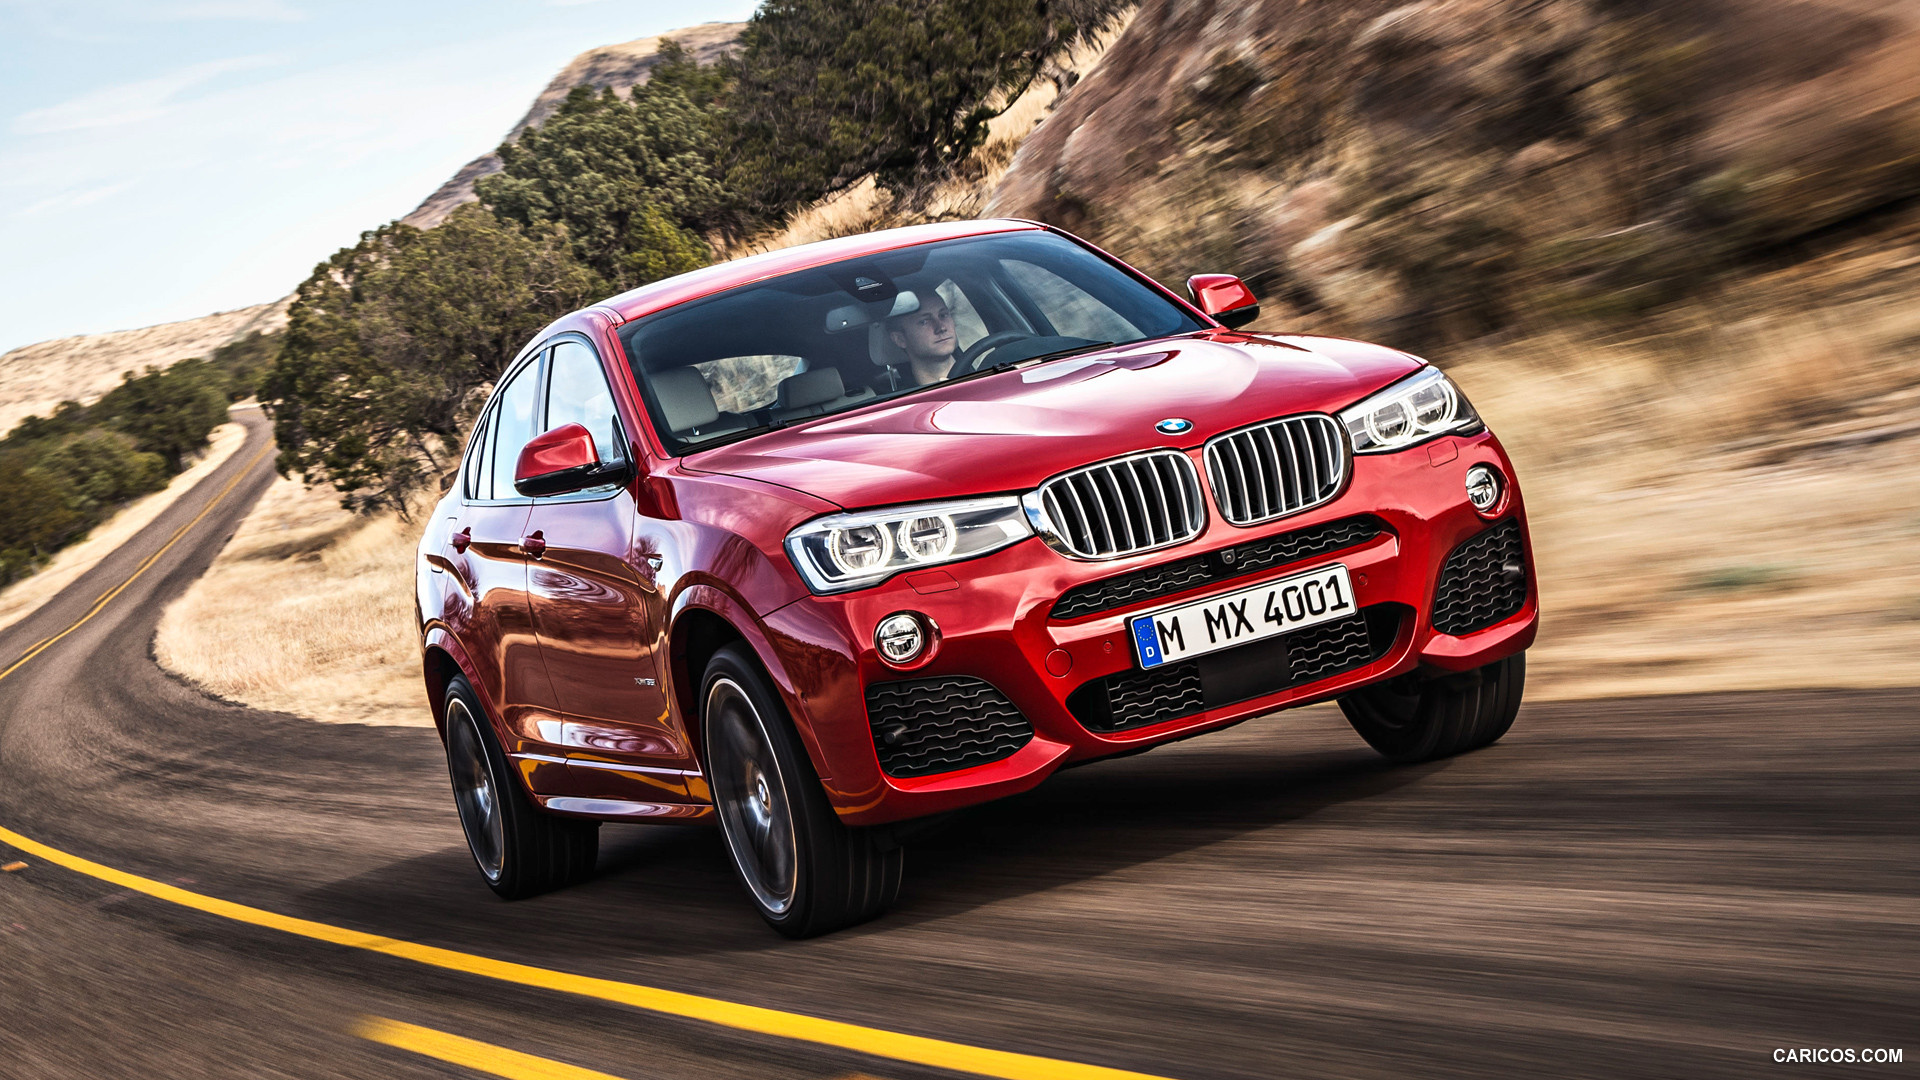 1920x1080 - BMW X4 Wallpapers 35